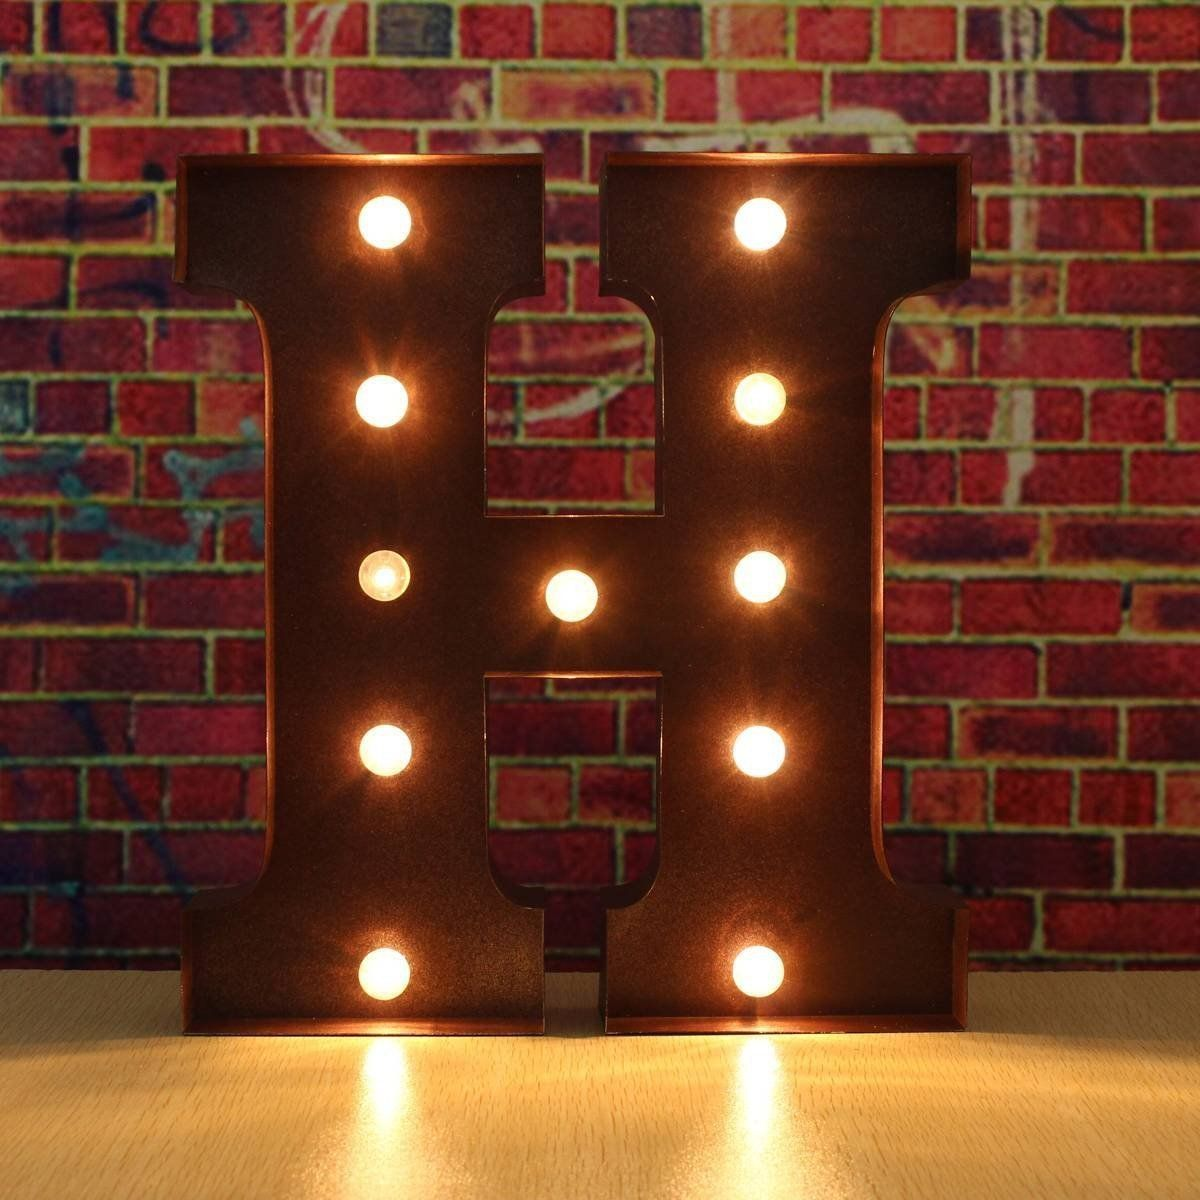 Light Up Letters For Wall Cool Solmore 30X5Cm Led Wall Letter Light Up Letter Wort Licht Az Inspiration Design